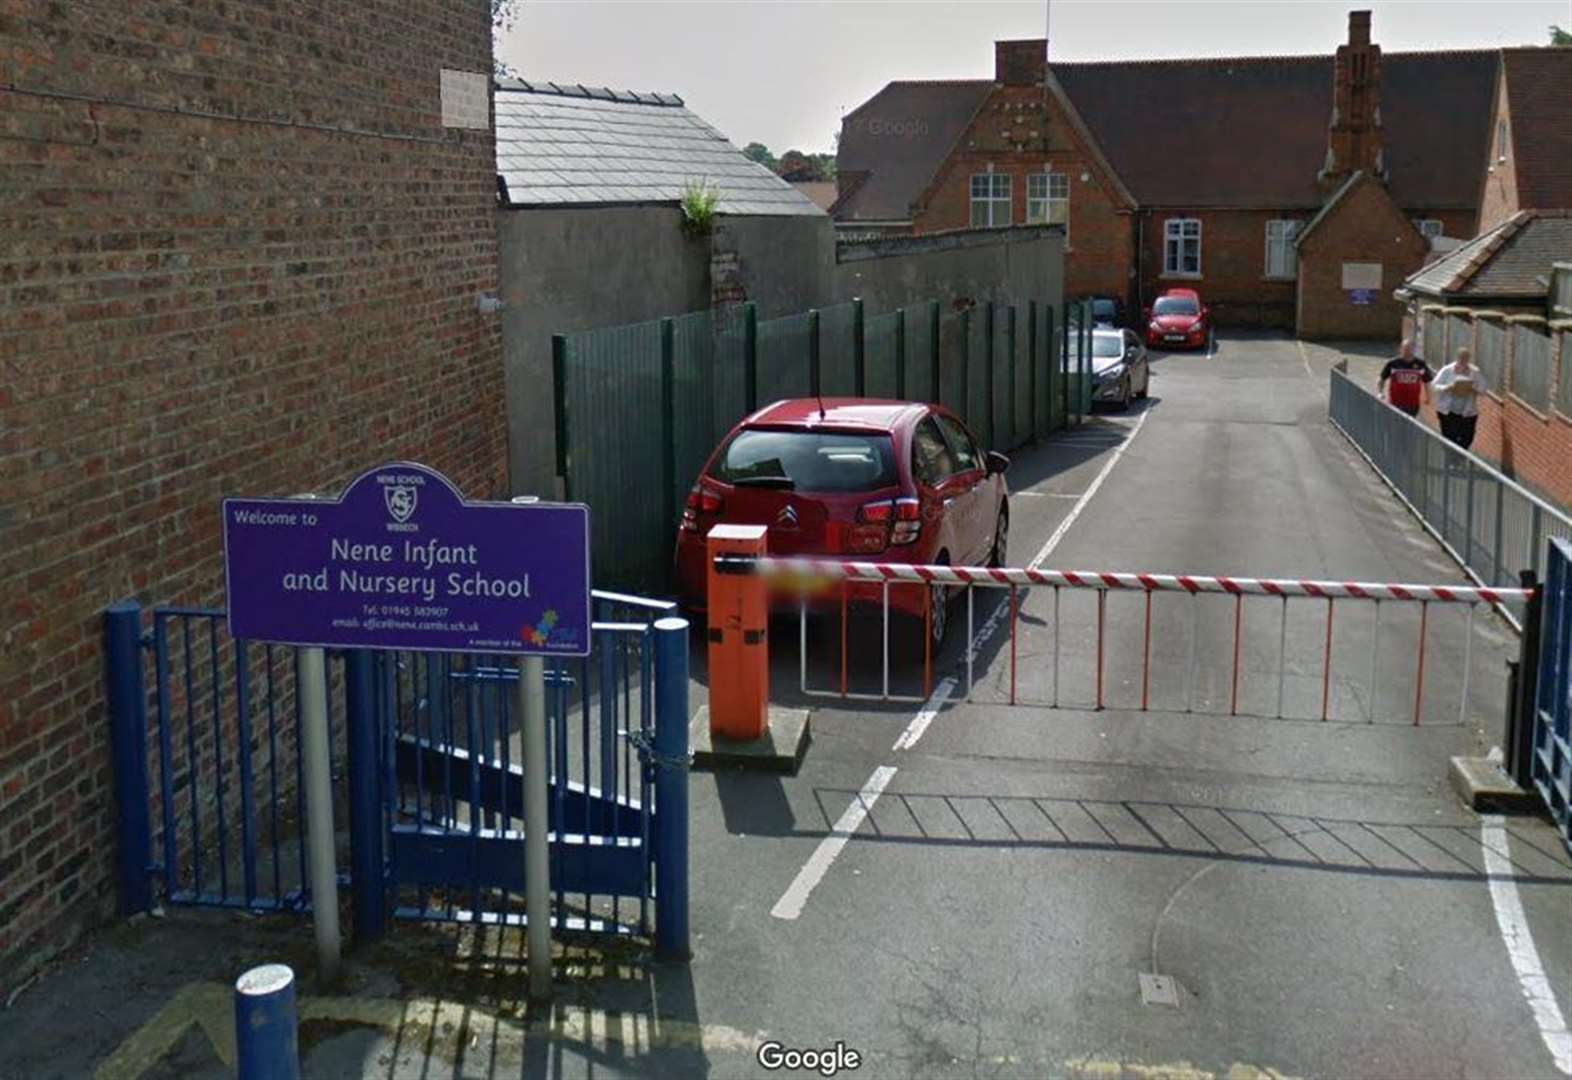 Wisbech school 'requires improvement' says Ofsted report which blames 'decline' in teaching quality